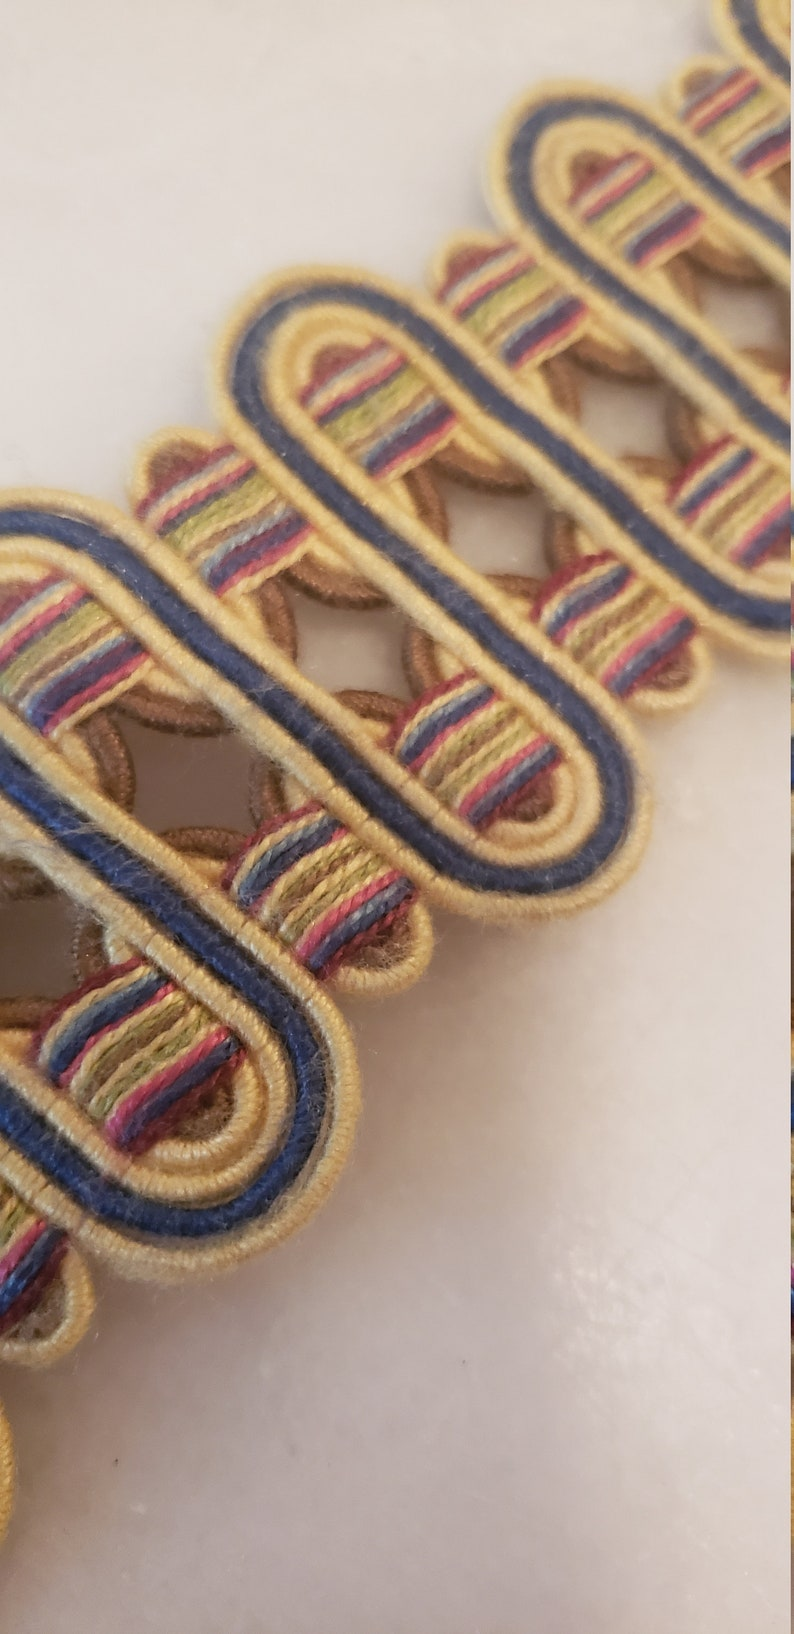 Josef Collection Flat Multi-Colored Tape/Trim by Lina's. image 0